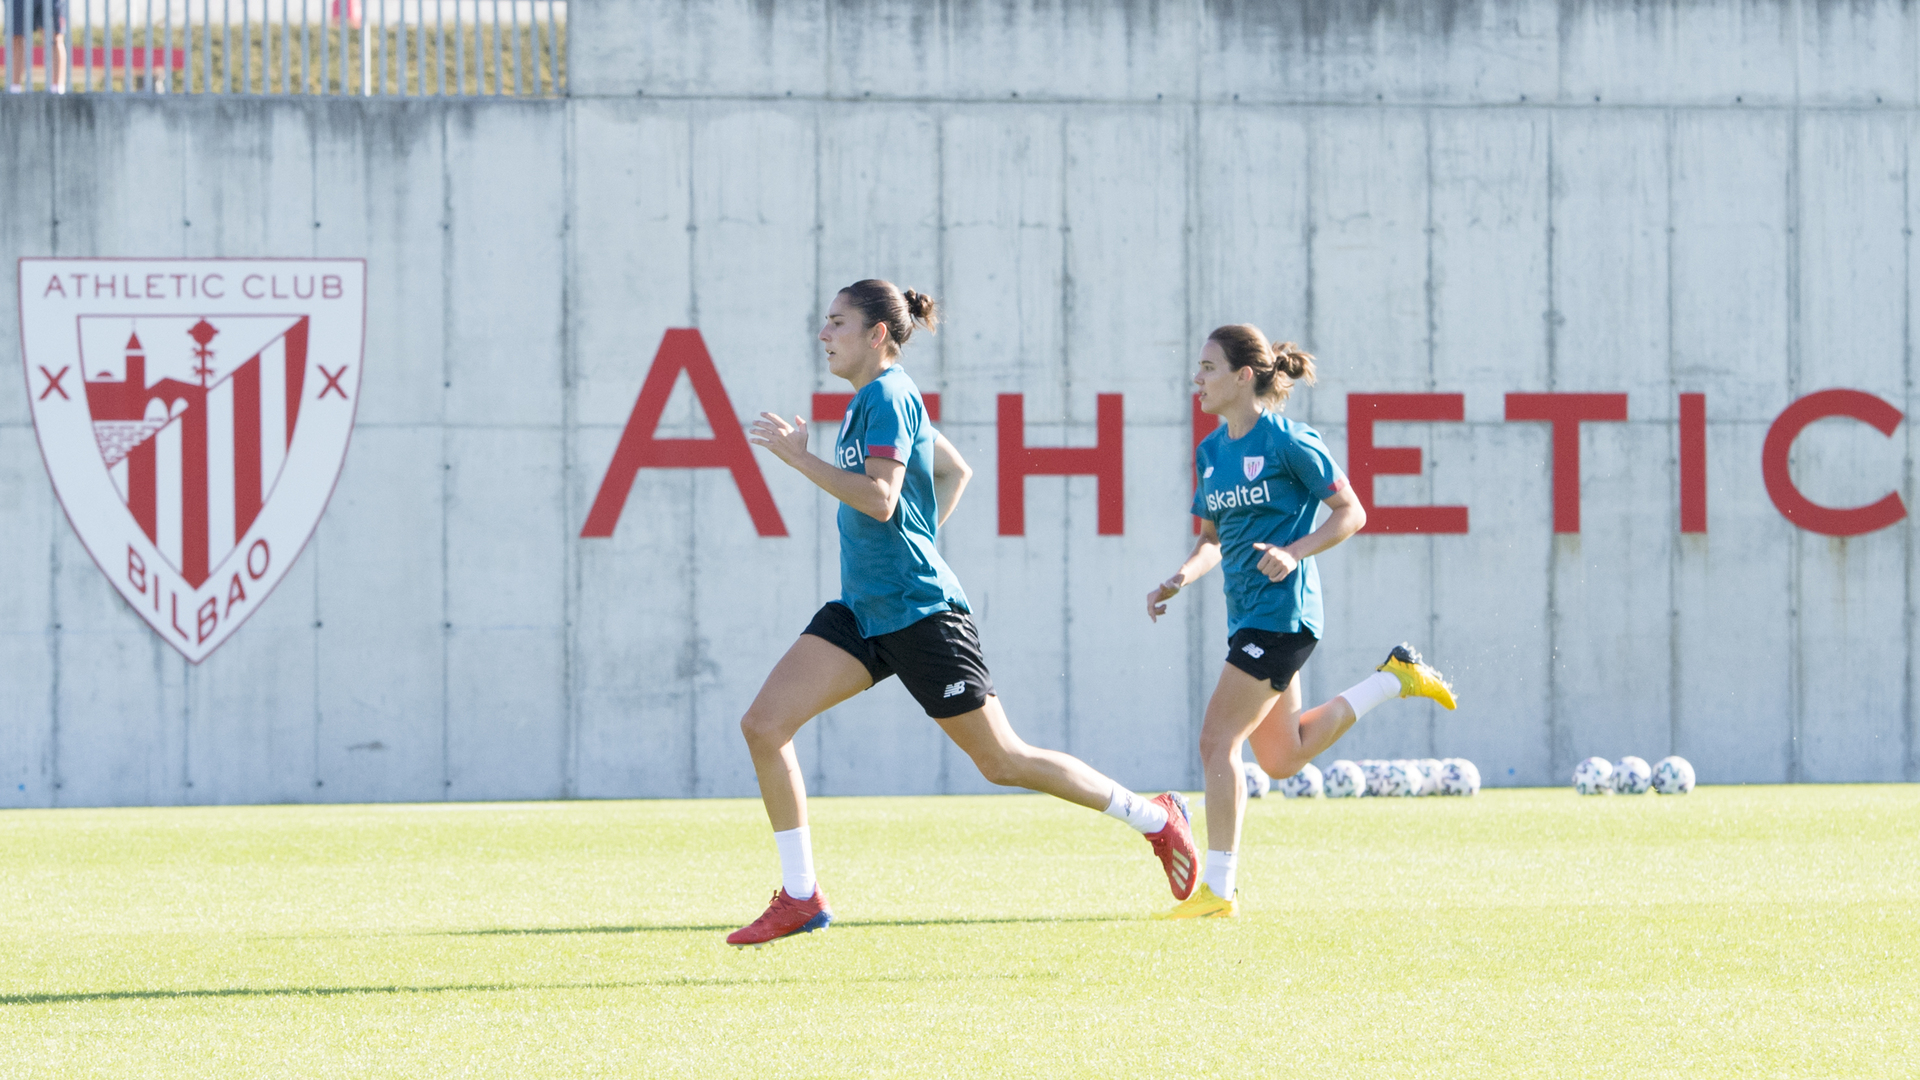 Athletic Club Women's work schedule until September 20